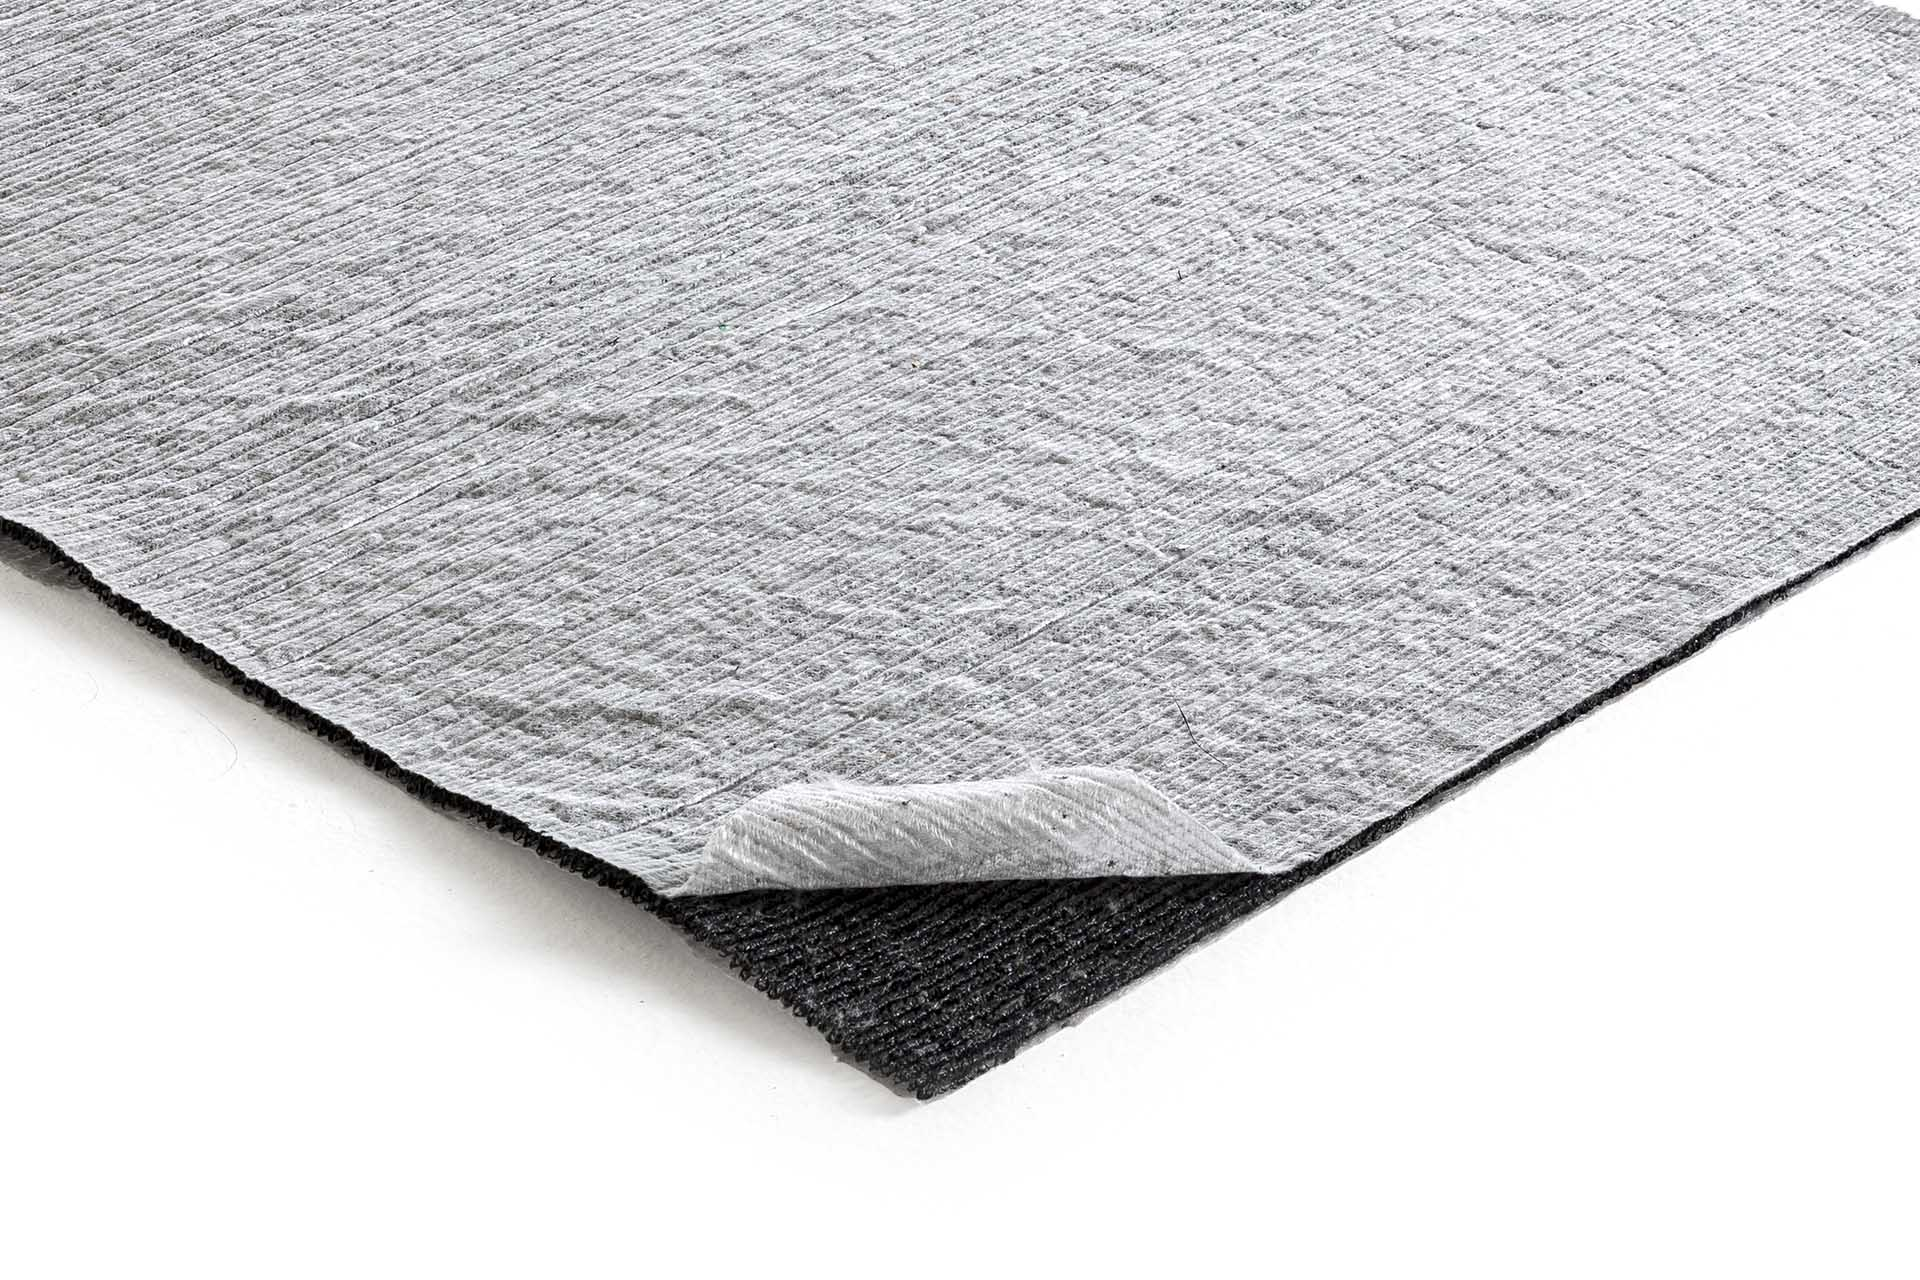 Drainage geocomposite: core of PP monofilaments bonded to a nonwoven geotextiles, 5 mm thick